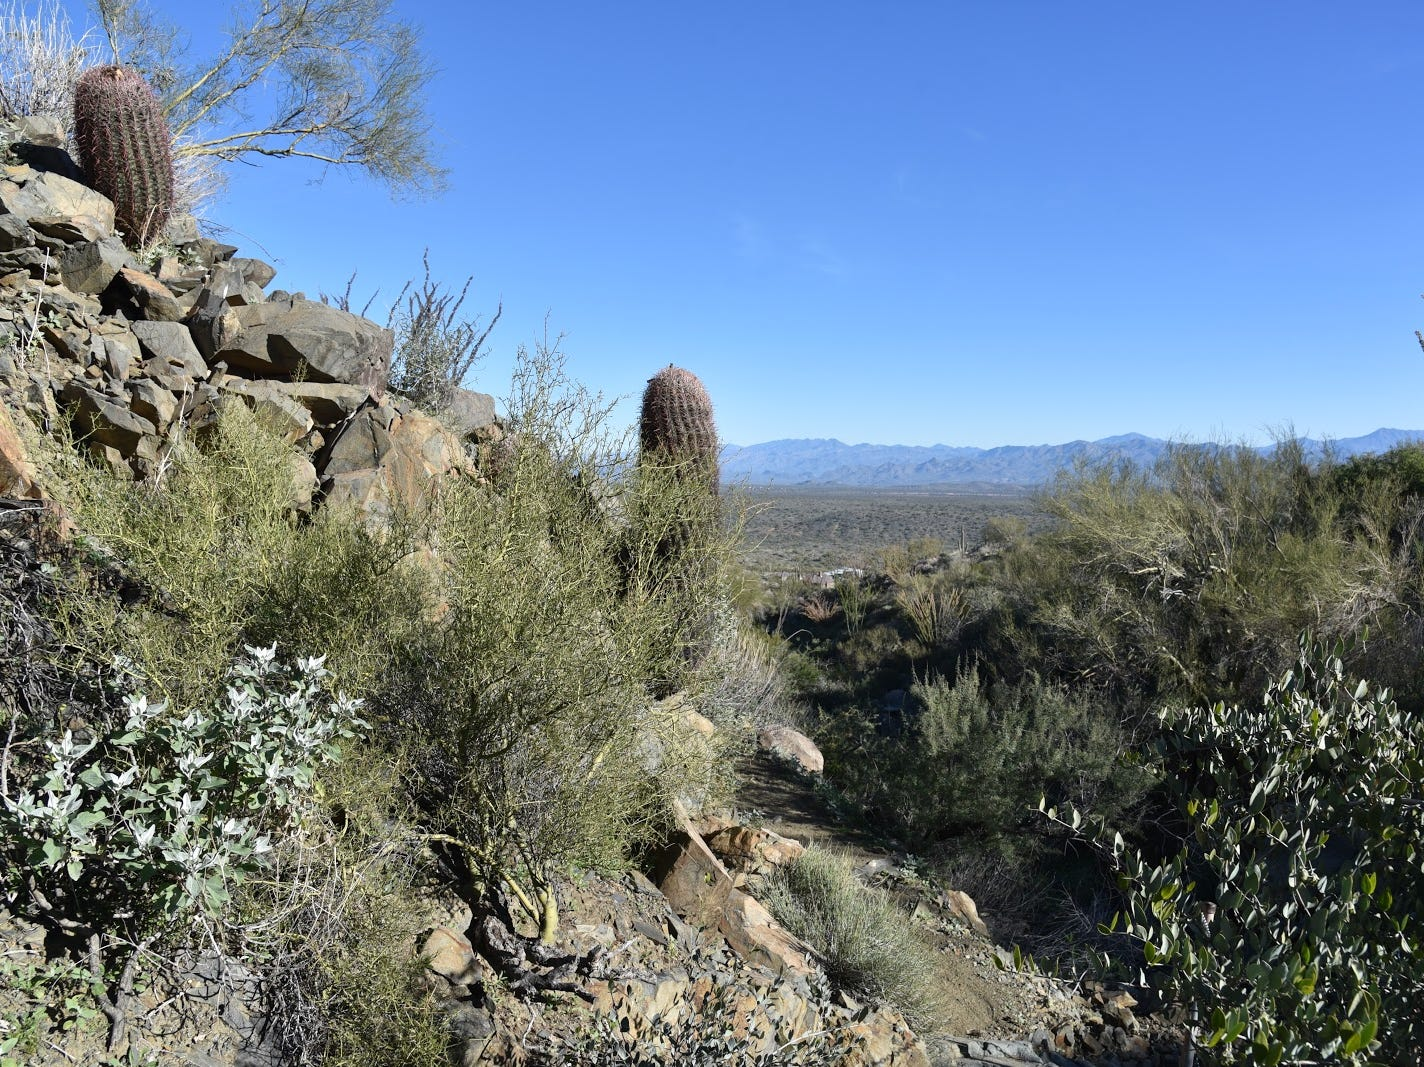 The Sonoran Trail dips and climbs through rugged foothills at Fountain Hills McDowell Mountain Preserve.